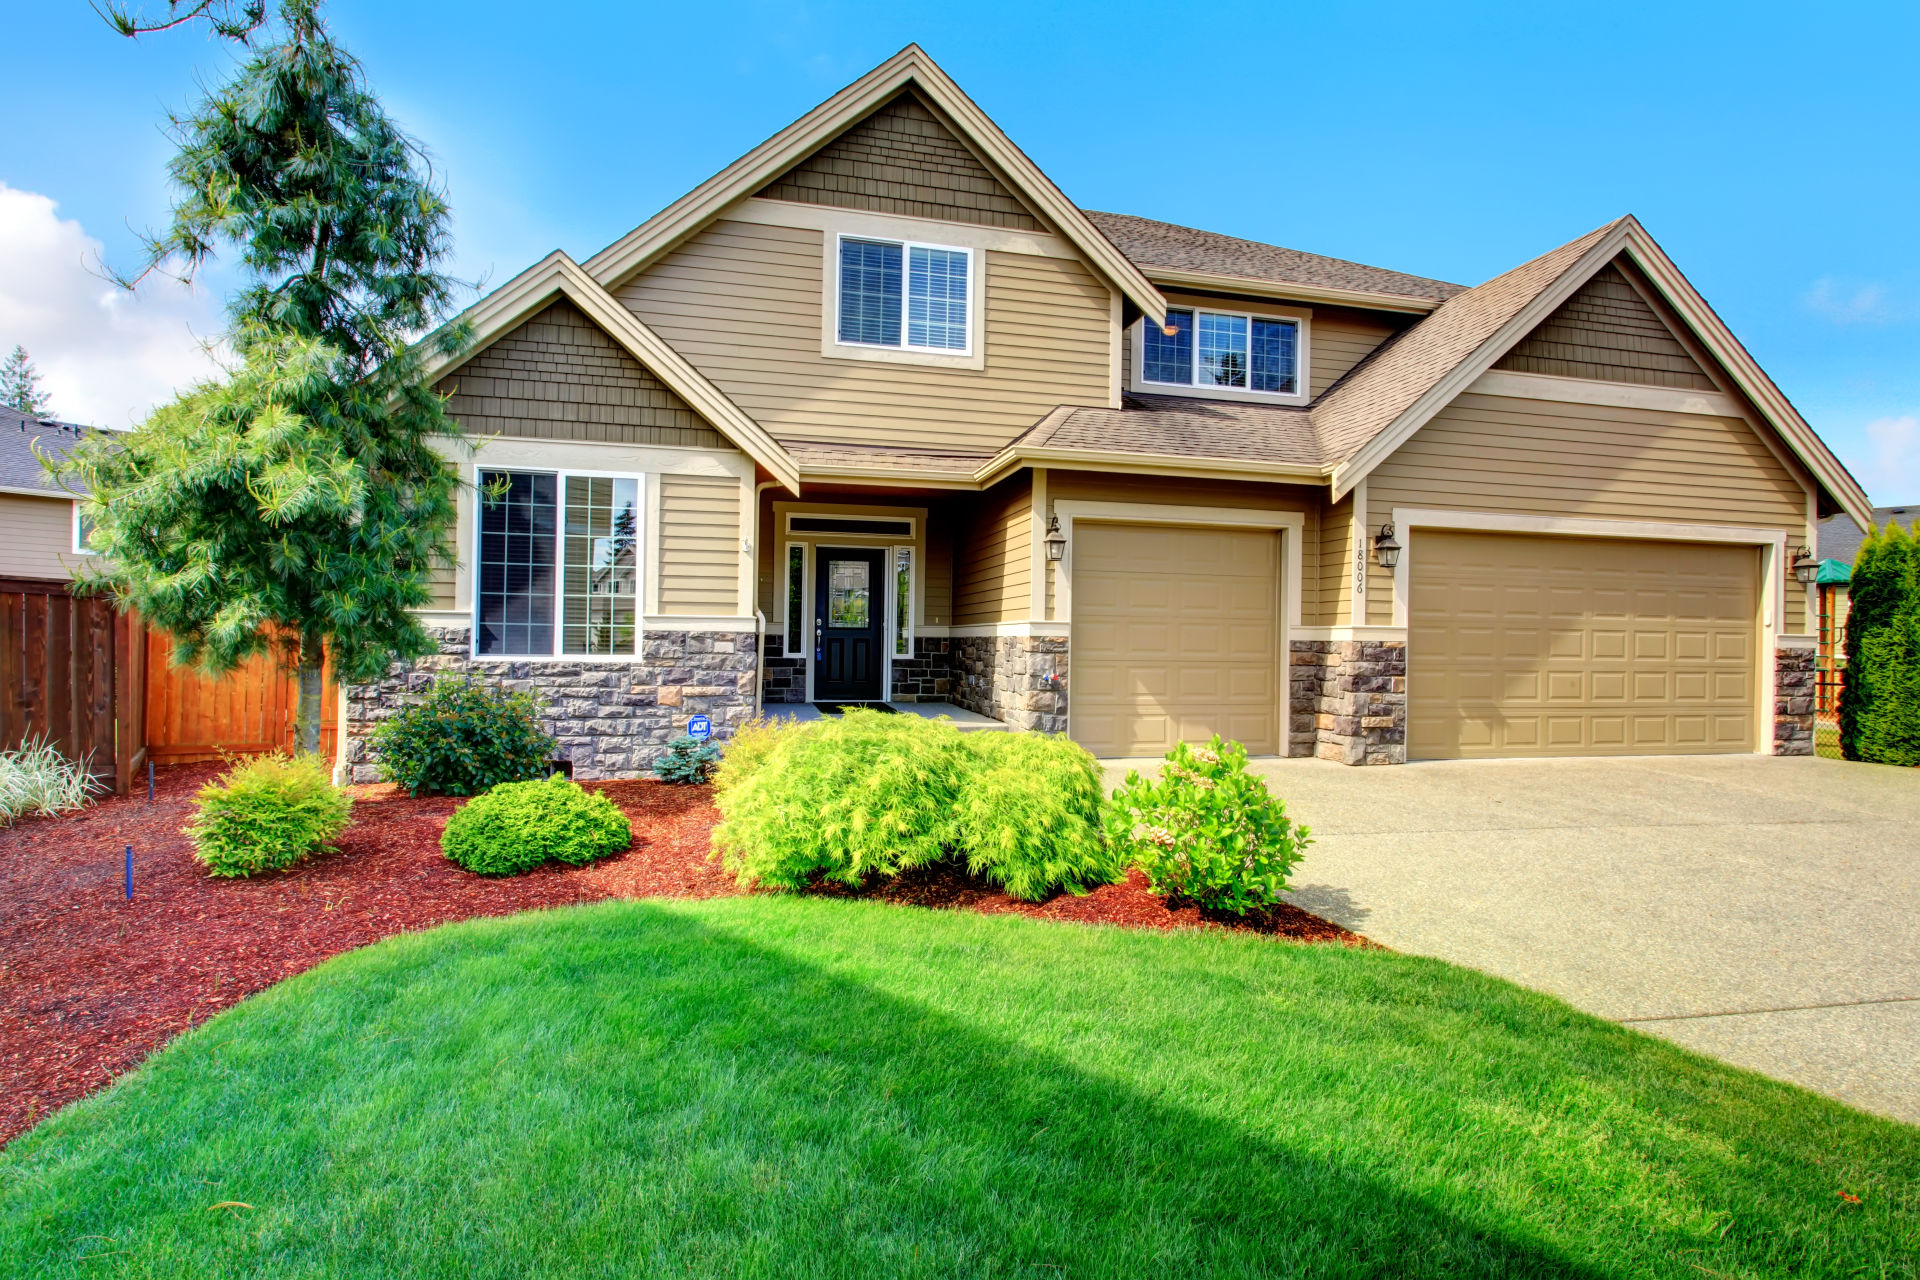 Buying a Home for the First Time? Five Real Estate Terms You'll Need to Know